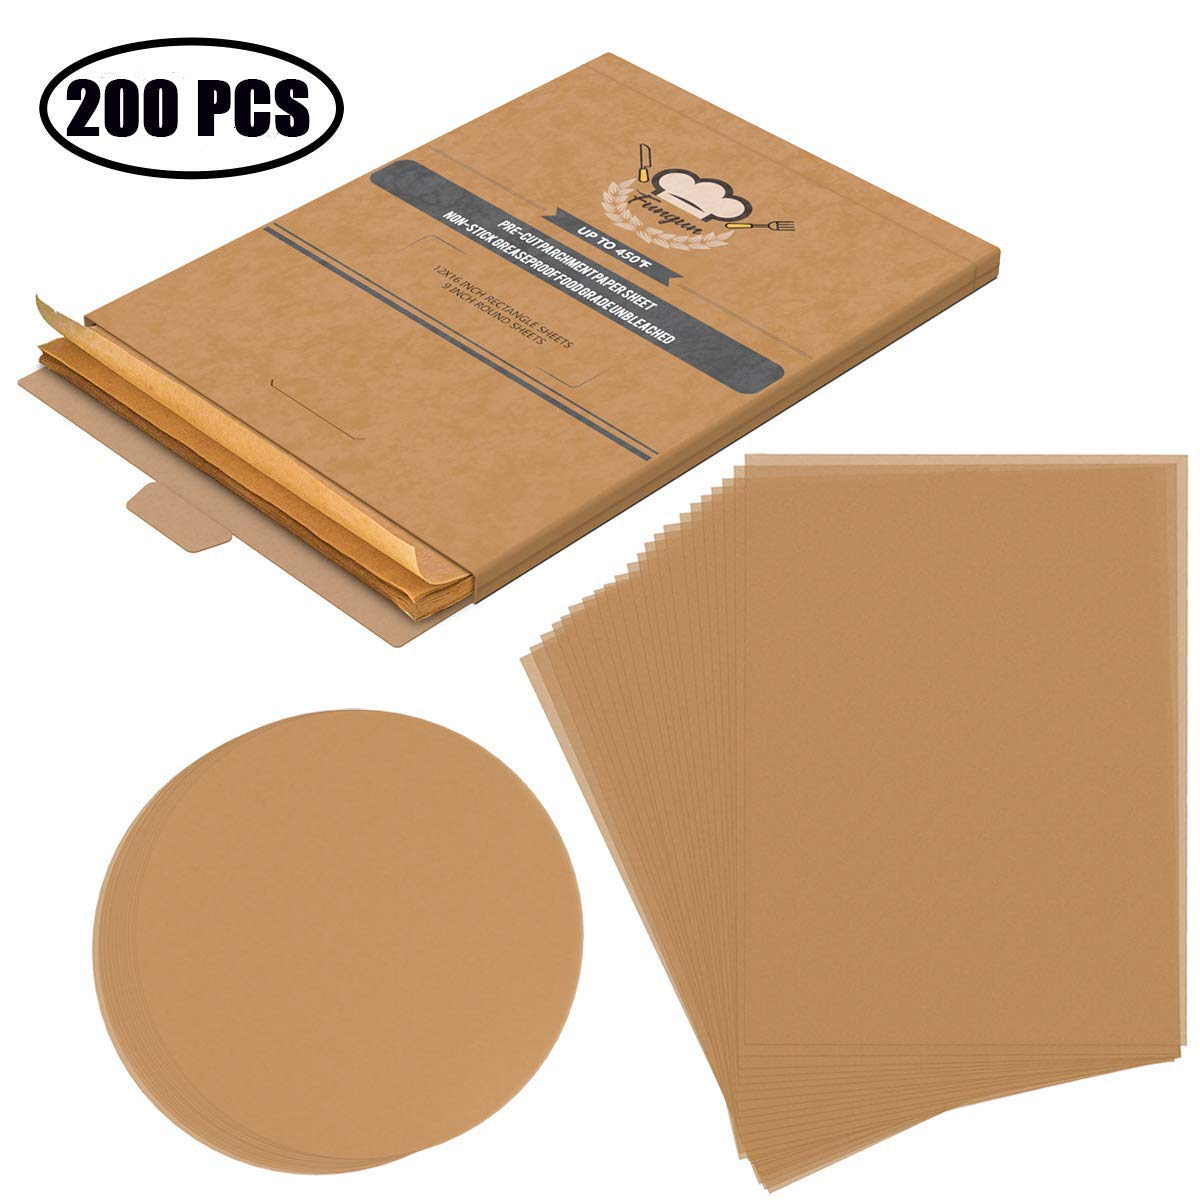 Unbleached Parchment Paper, Fungun Non-Stick Precut Baking Sheets for Grilling Air Fryer Steaming Bread Cake Cookie and More (100 PCS Round and 100 PCS Rectan